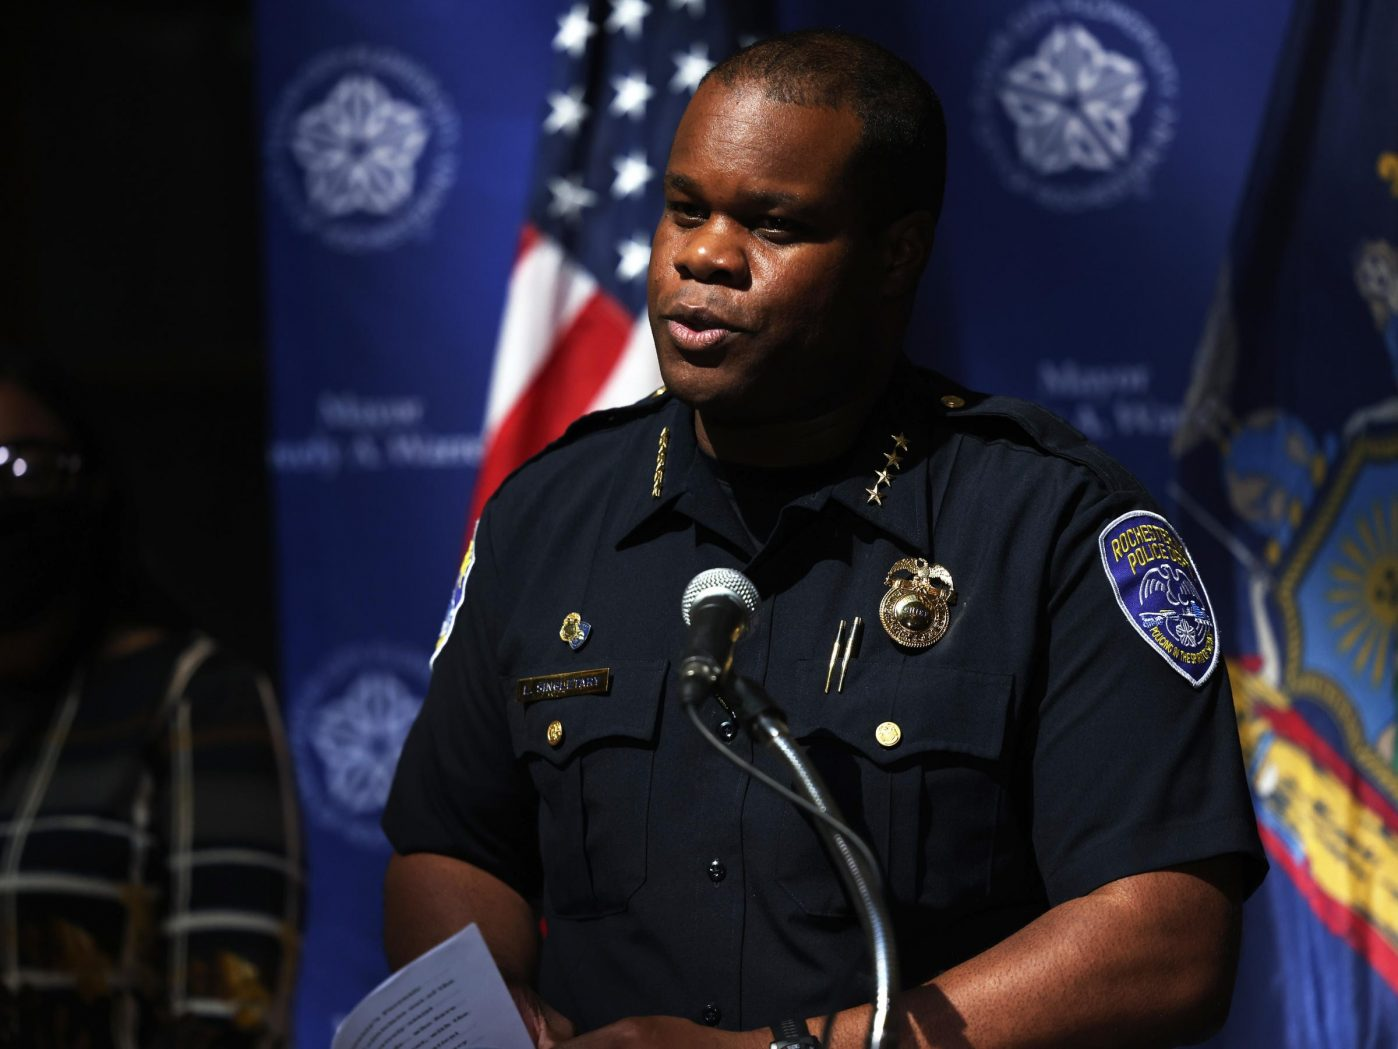 Police chief quits after protests over death of Daniel Prude